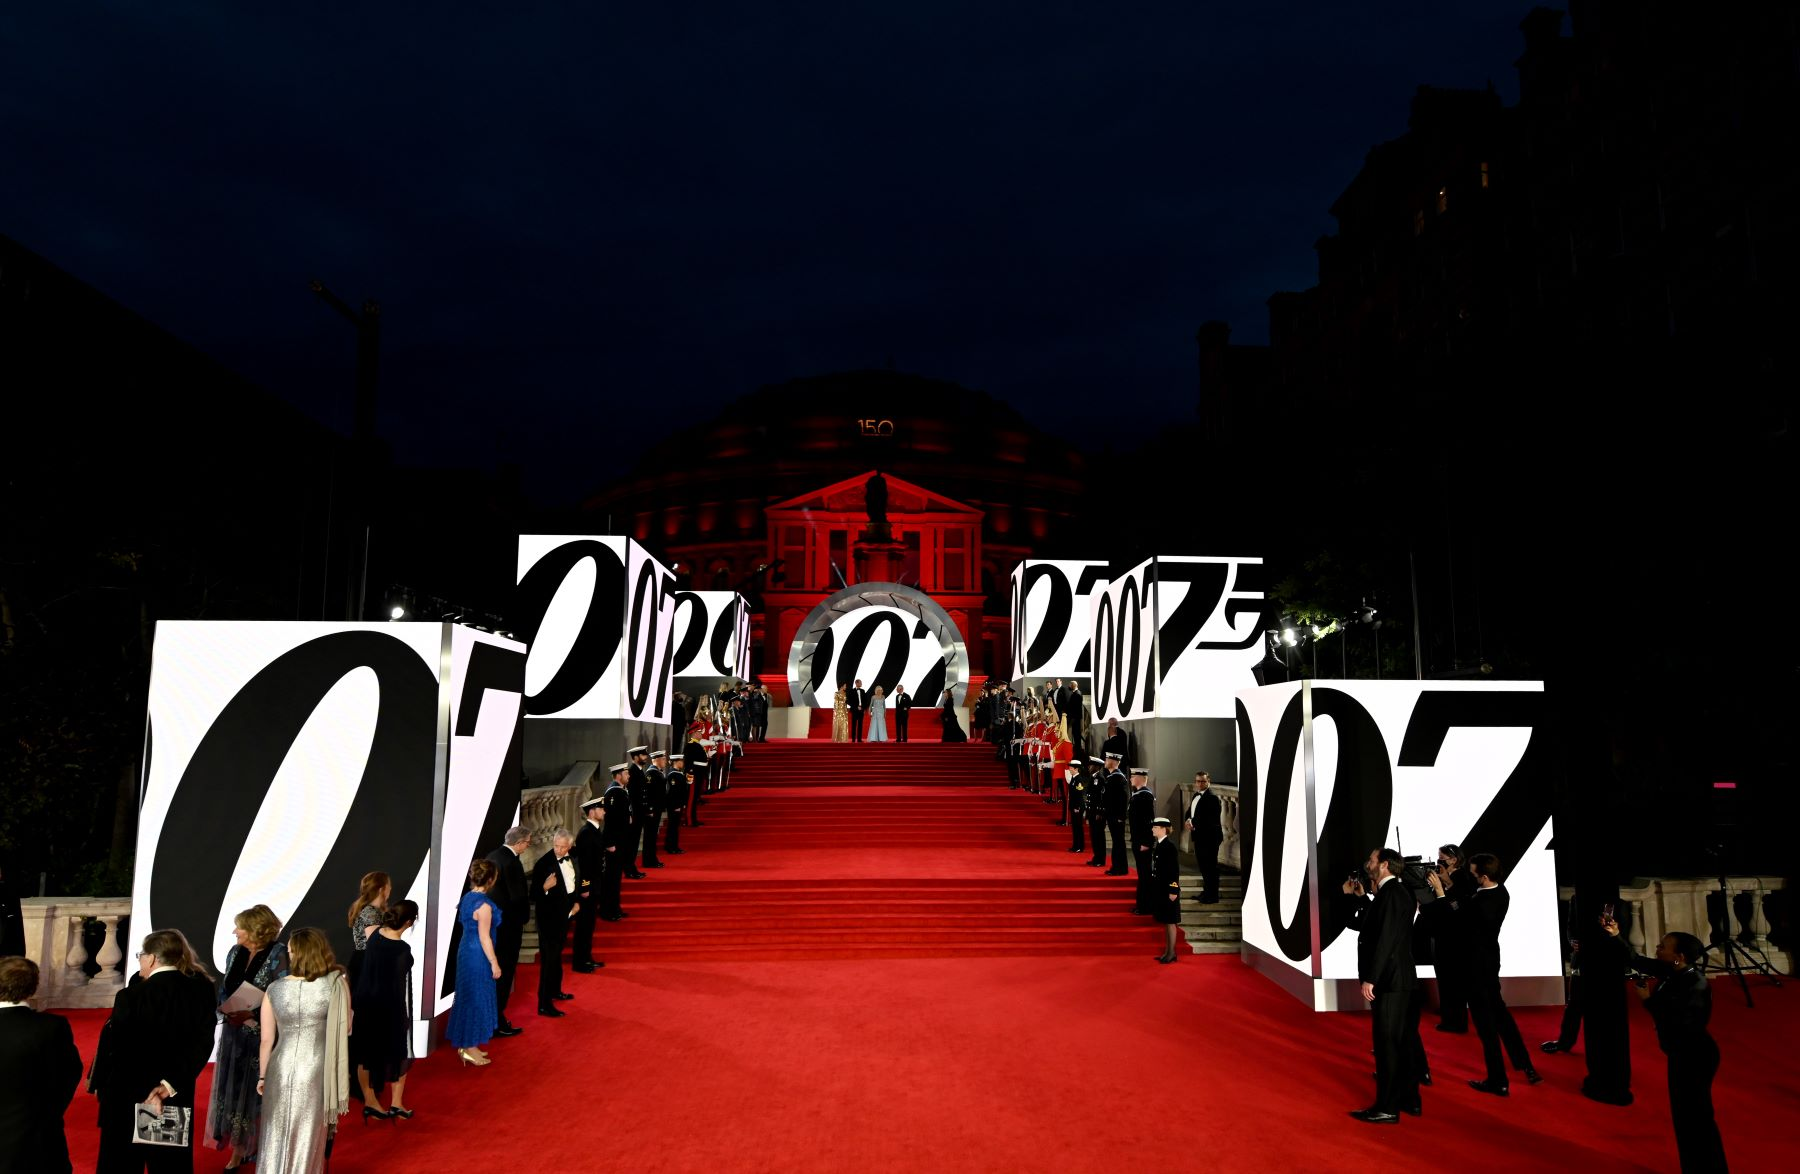 The 'No Time to Die' red carpet world premiere in London, England